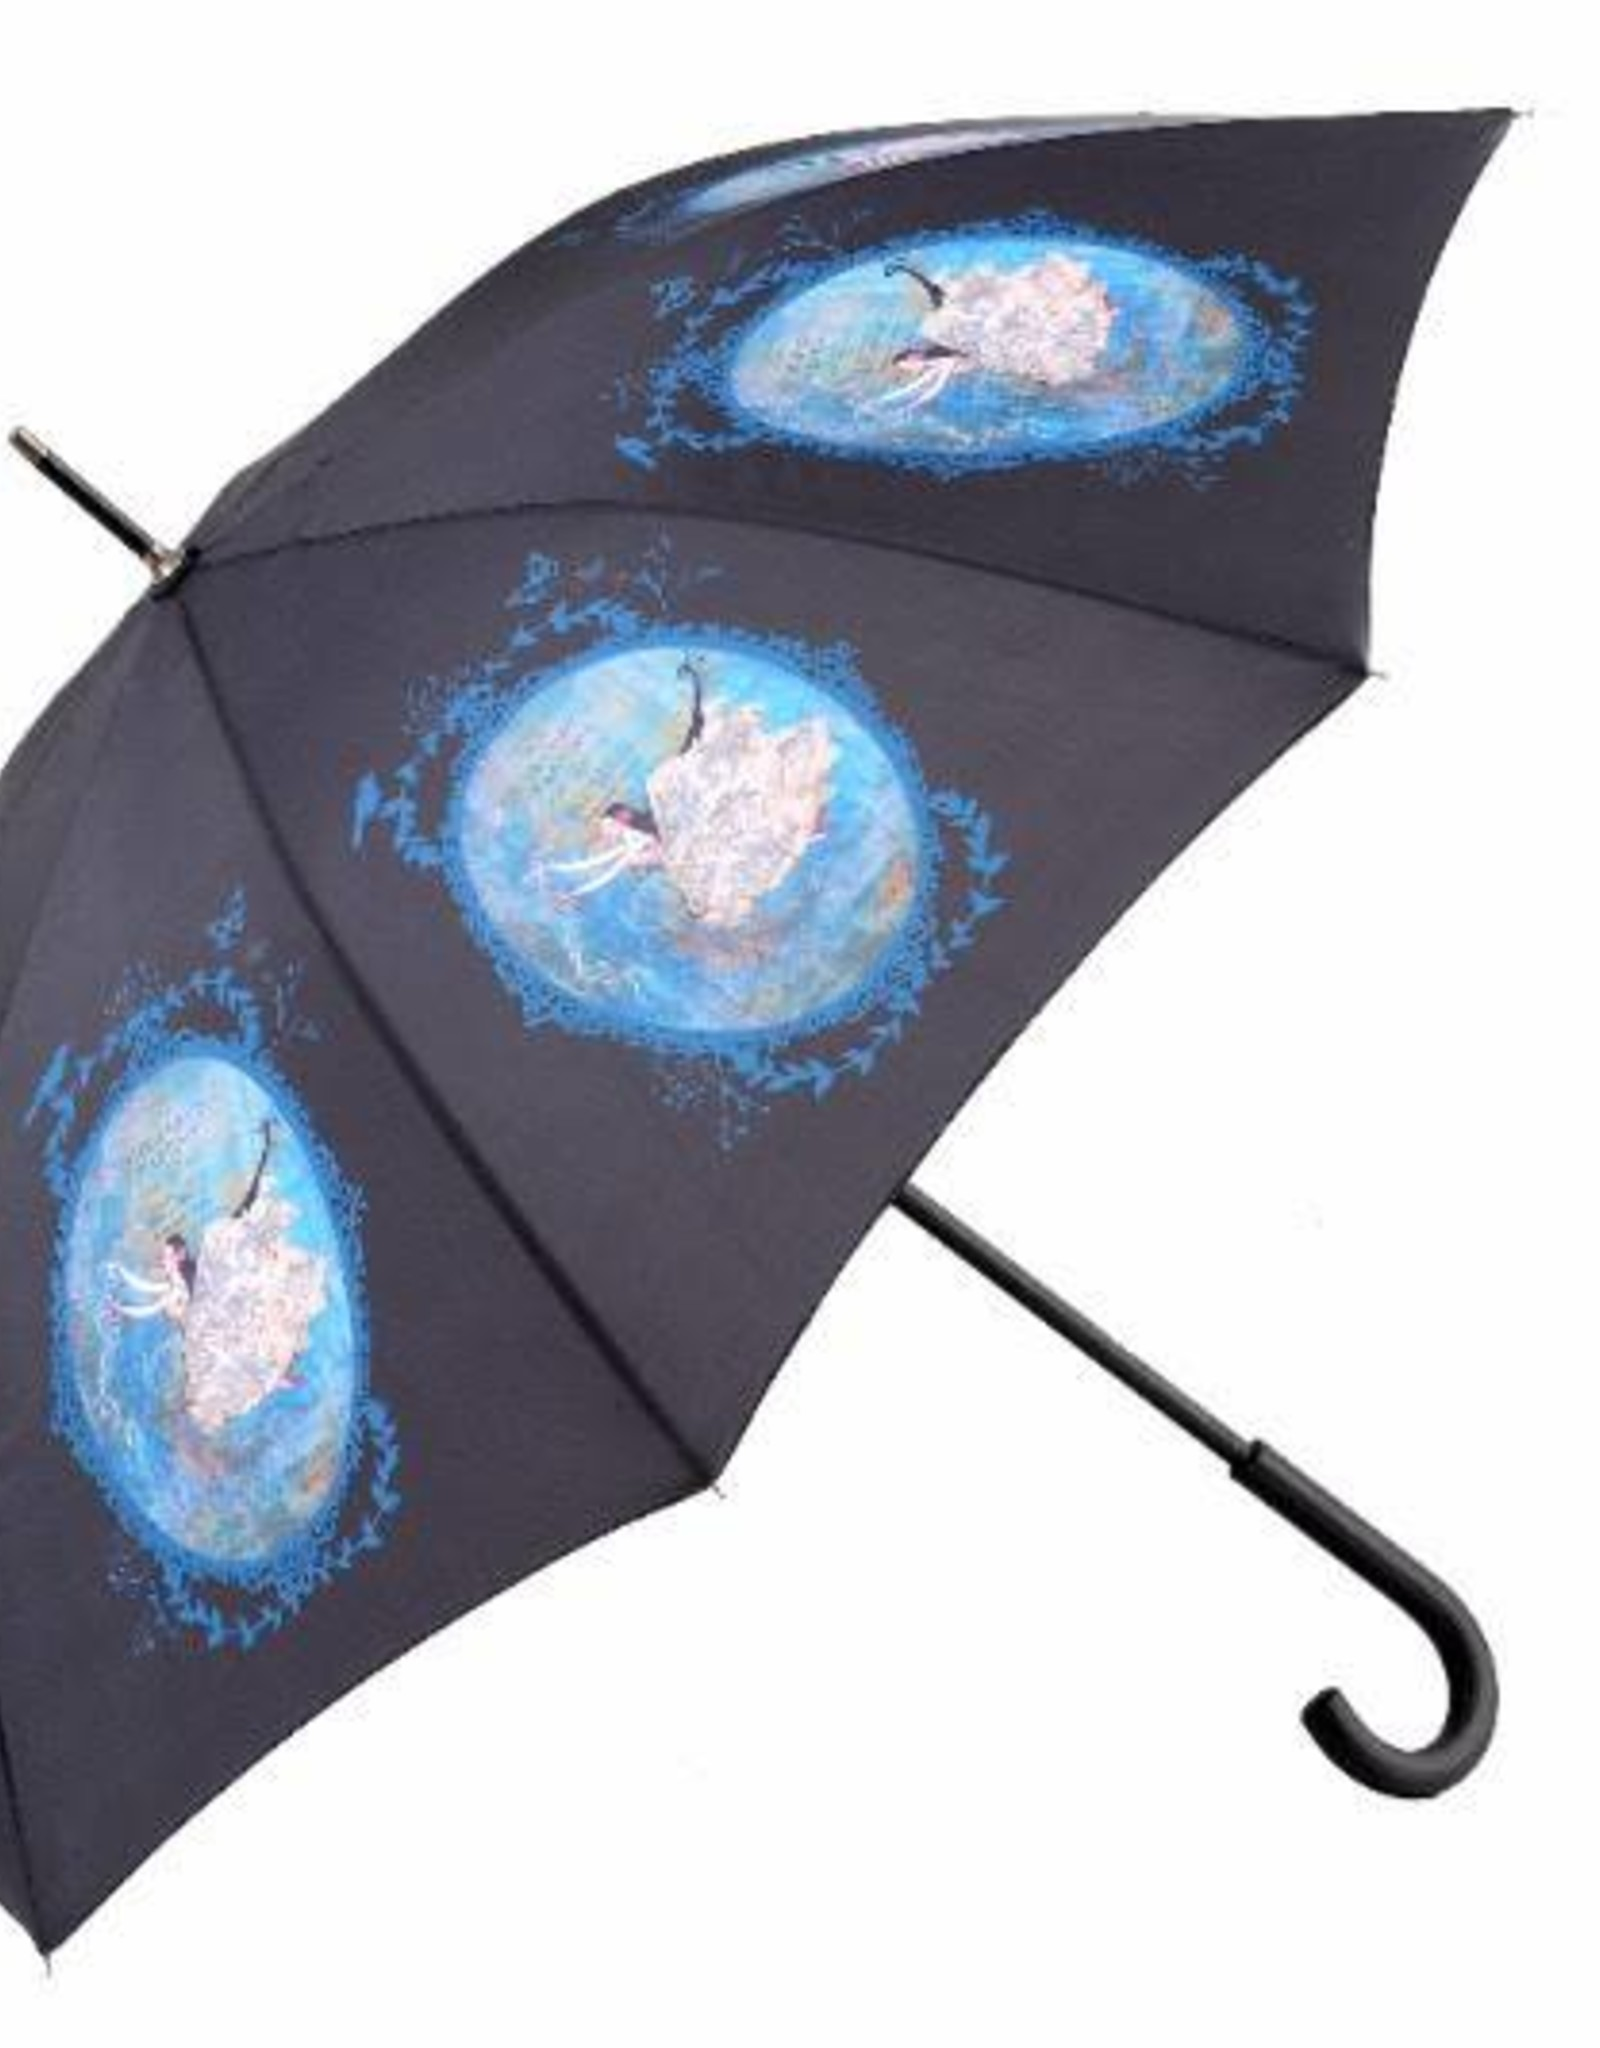 B+ Printworks 905VV01 Umbrella - Bright Star of Love